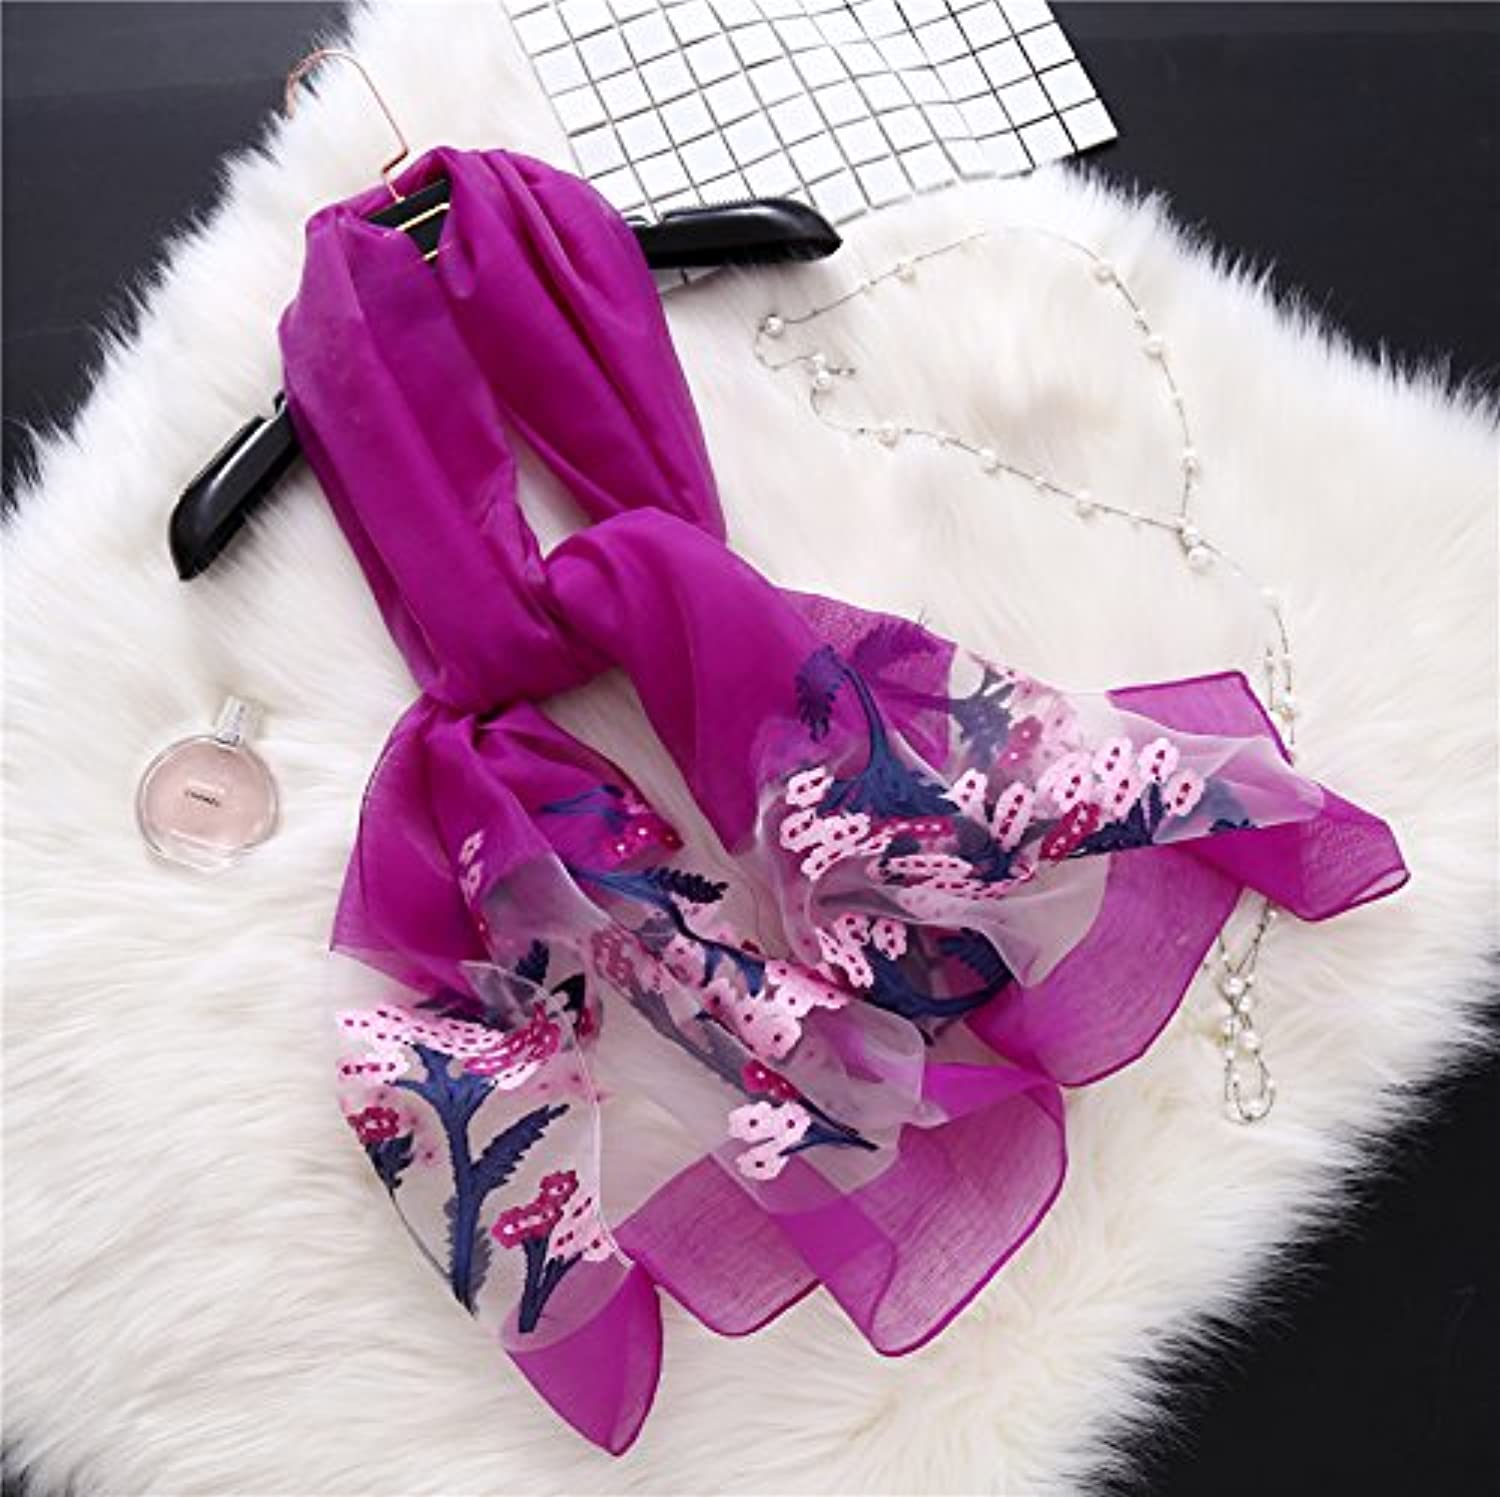 Ahuiopl Hot Designer Brand Women Scarf Spring Summer Silk Shawls Lady Wraps Long Size Elegant Stoles Sunscreen